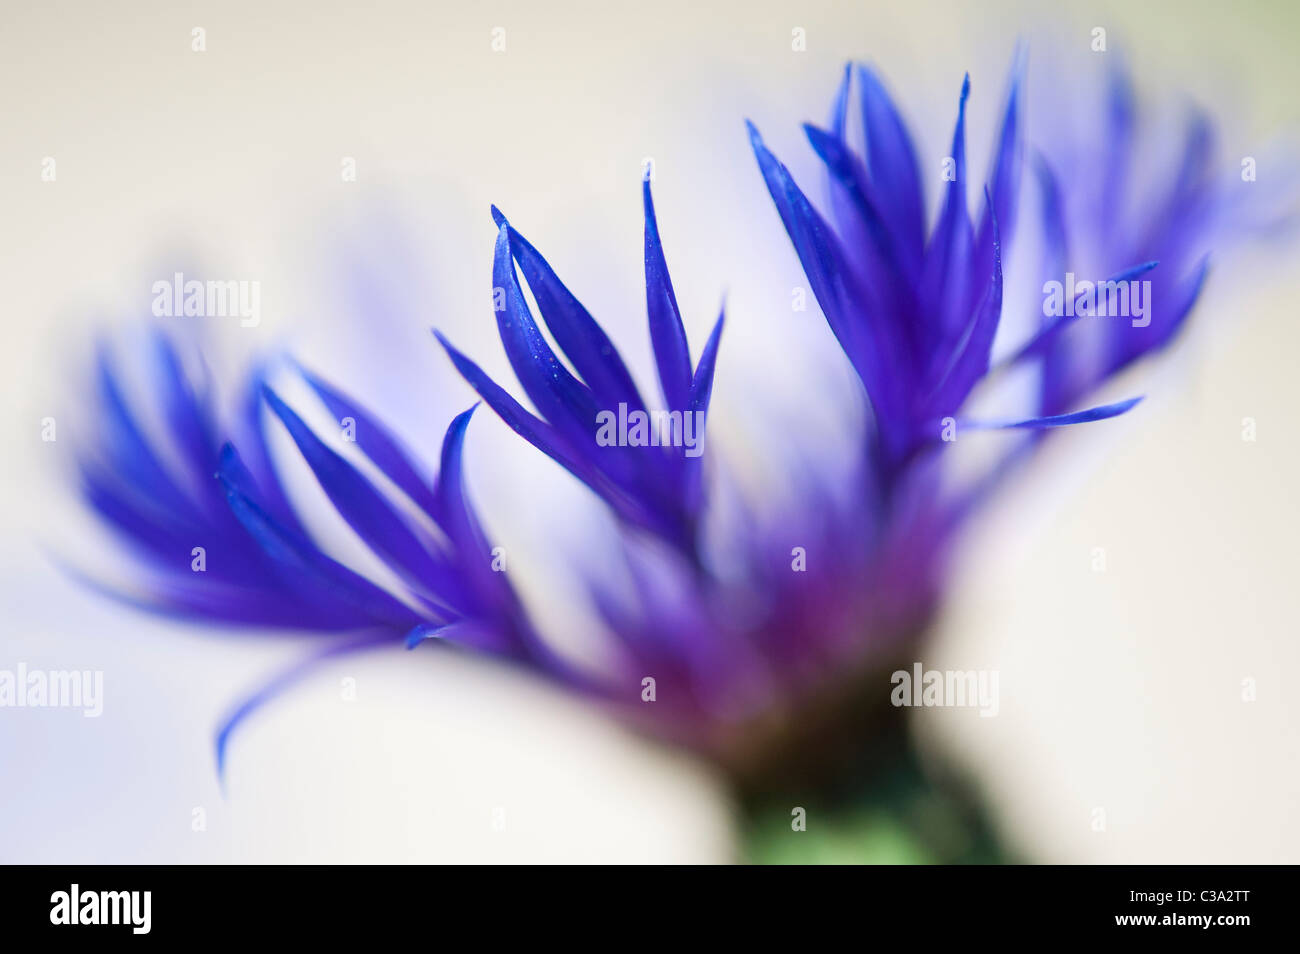 Centaurea montana. Perennial cornflower, Mountain bluet, Knapweed, Mountain knapweed against a light background. - Stock Image